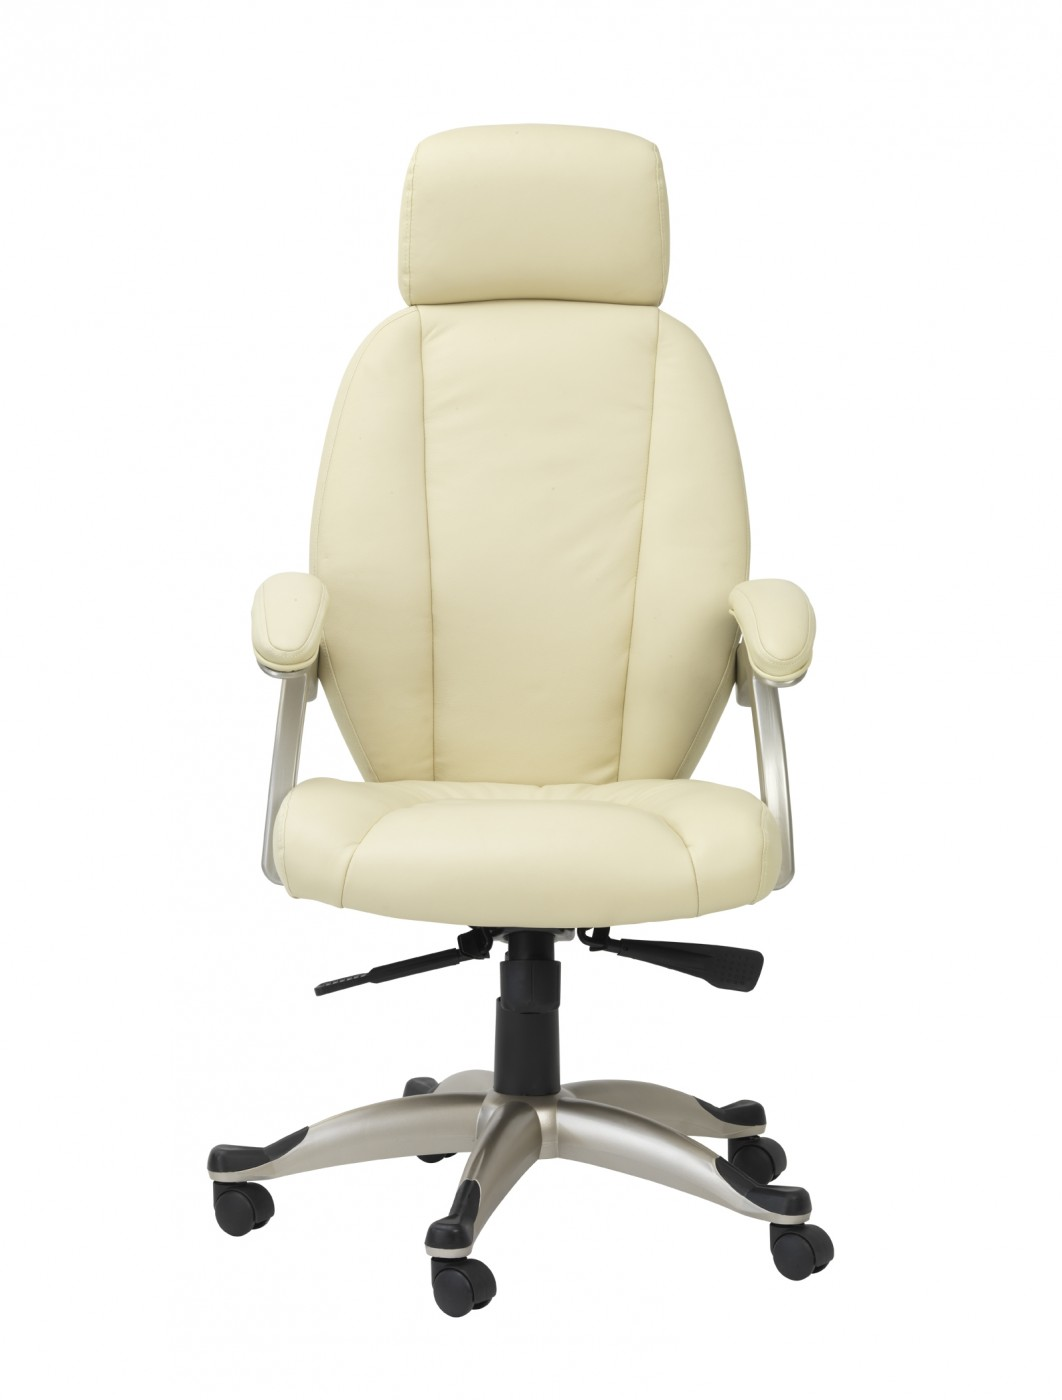 Executive Chair Aoc6355 L 121 Office Furniture